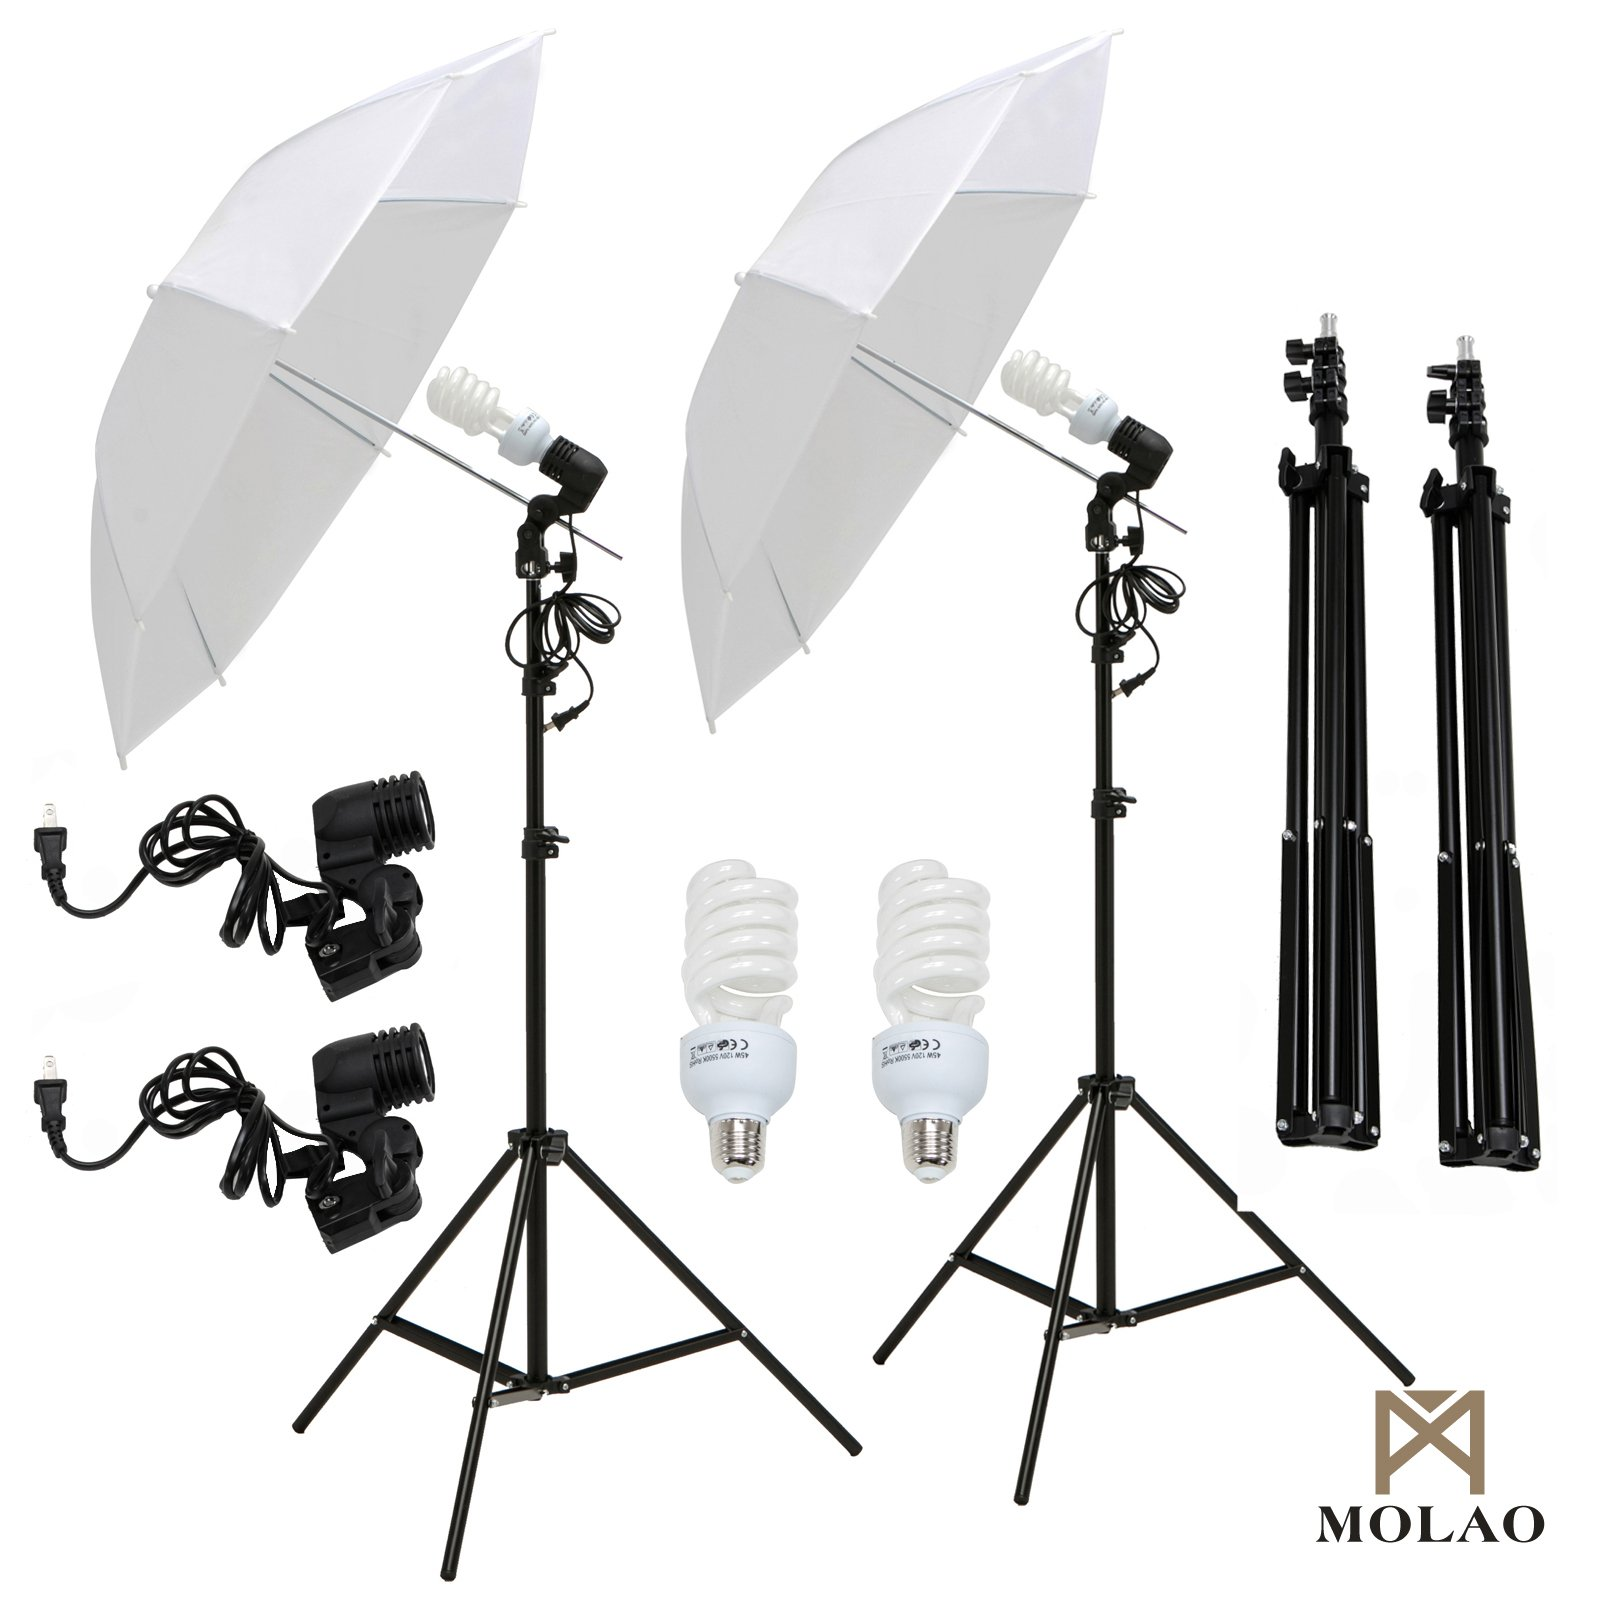 SUNCOO 2 x 33 Photo Studio White Umbrella Reflector Lamp Photography Stand Lighting Kit by SUNCOO